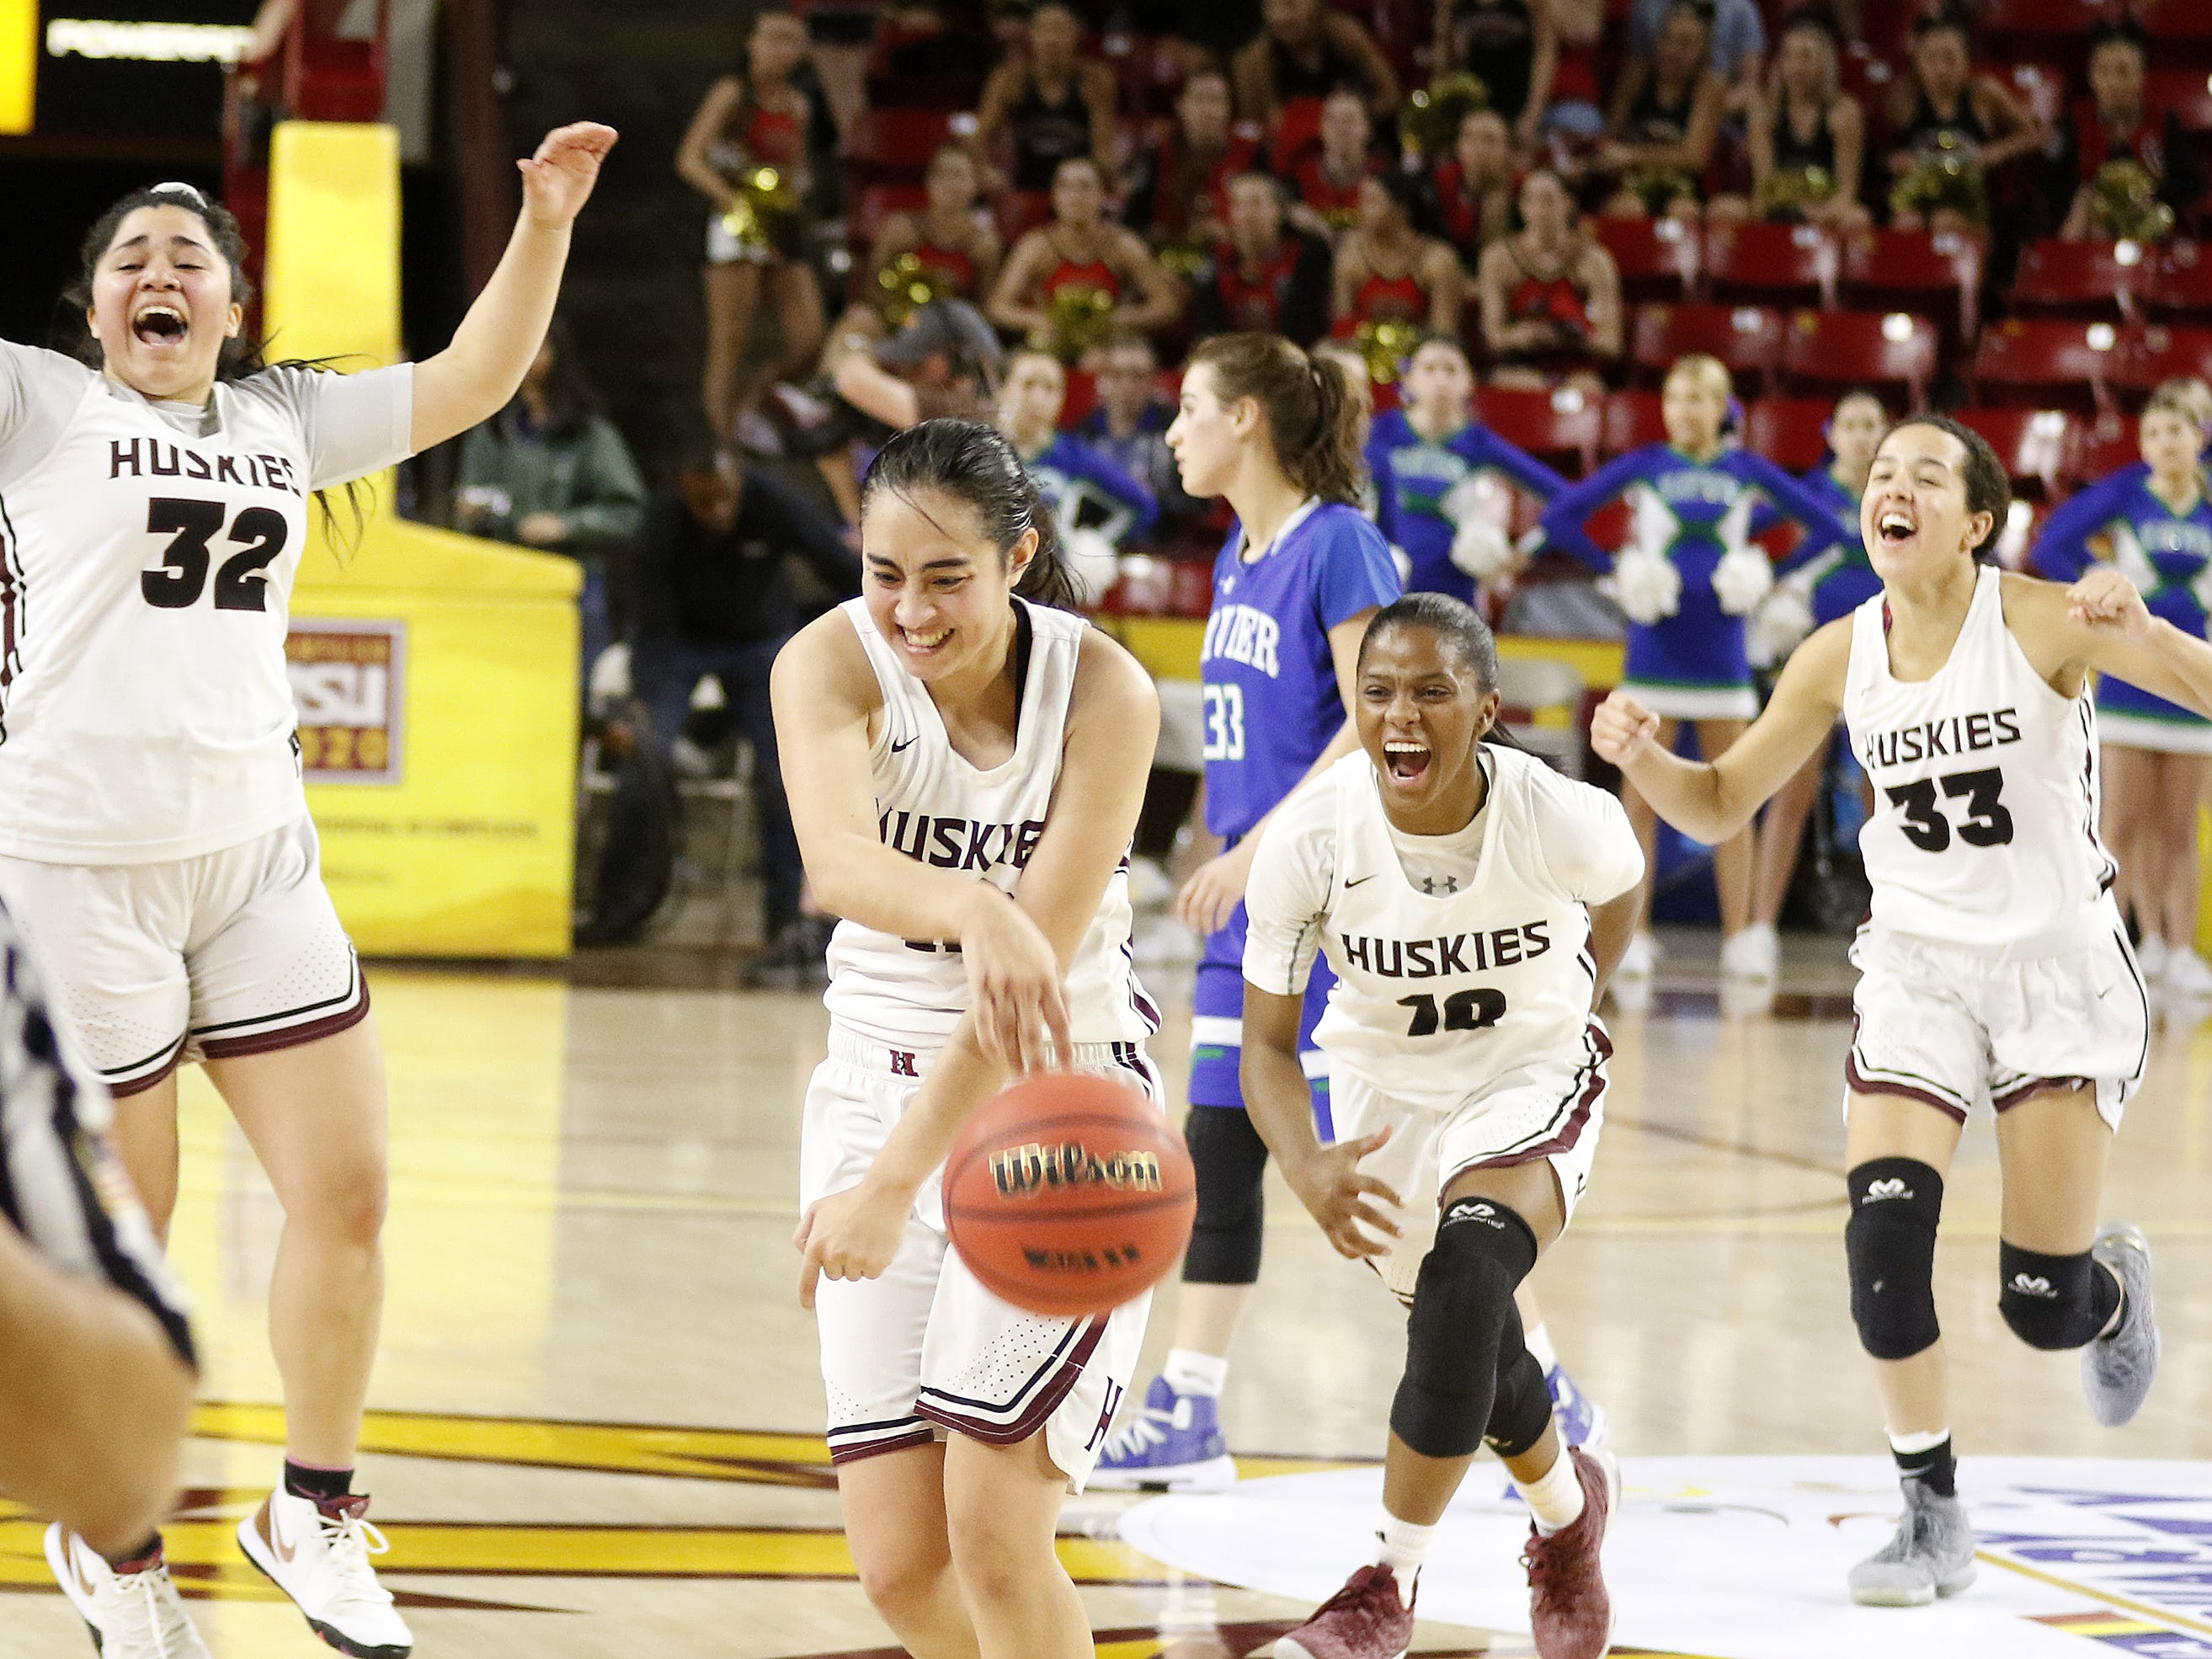 Hamilton players celebrate winning the 6A Girls State Championship over Xavier at Wells Fargo Arena in Tempe Tuesday, Feb 26, 2019.